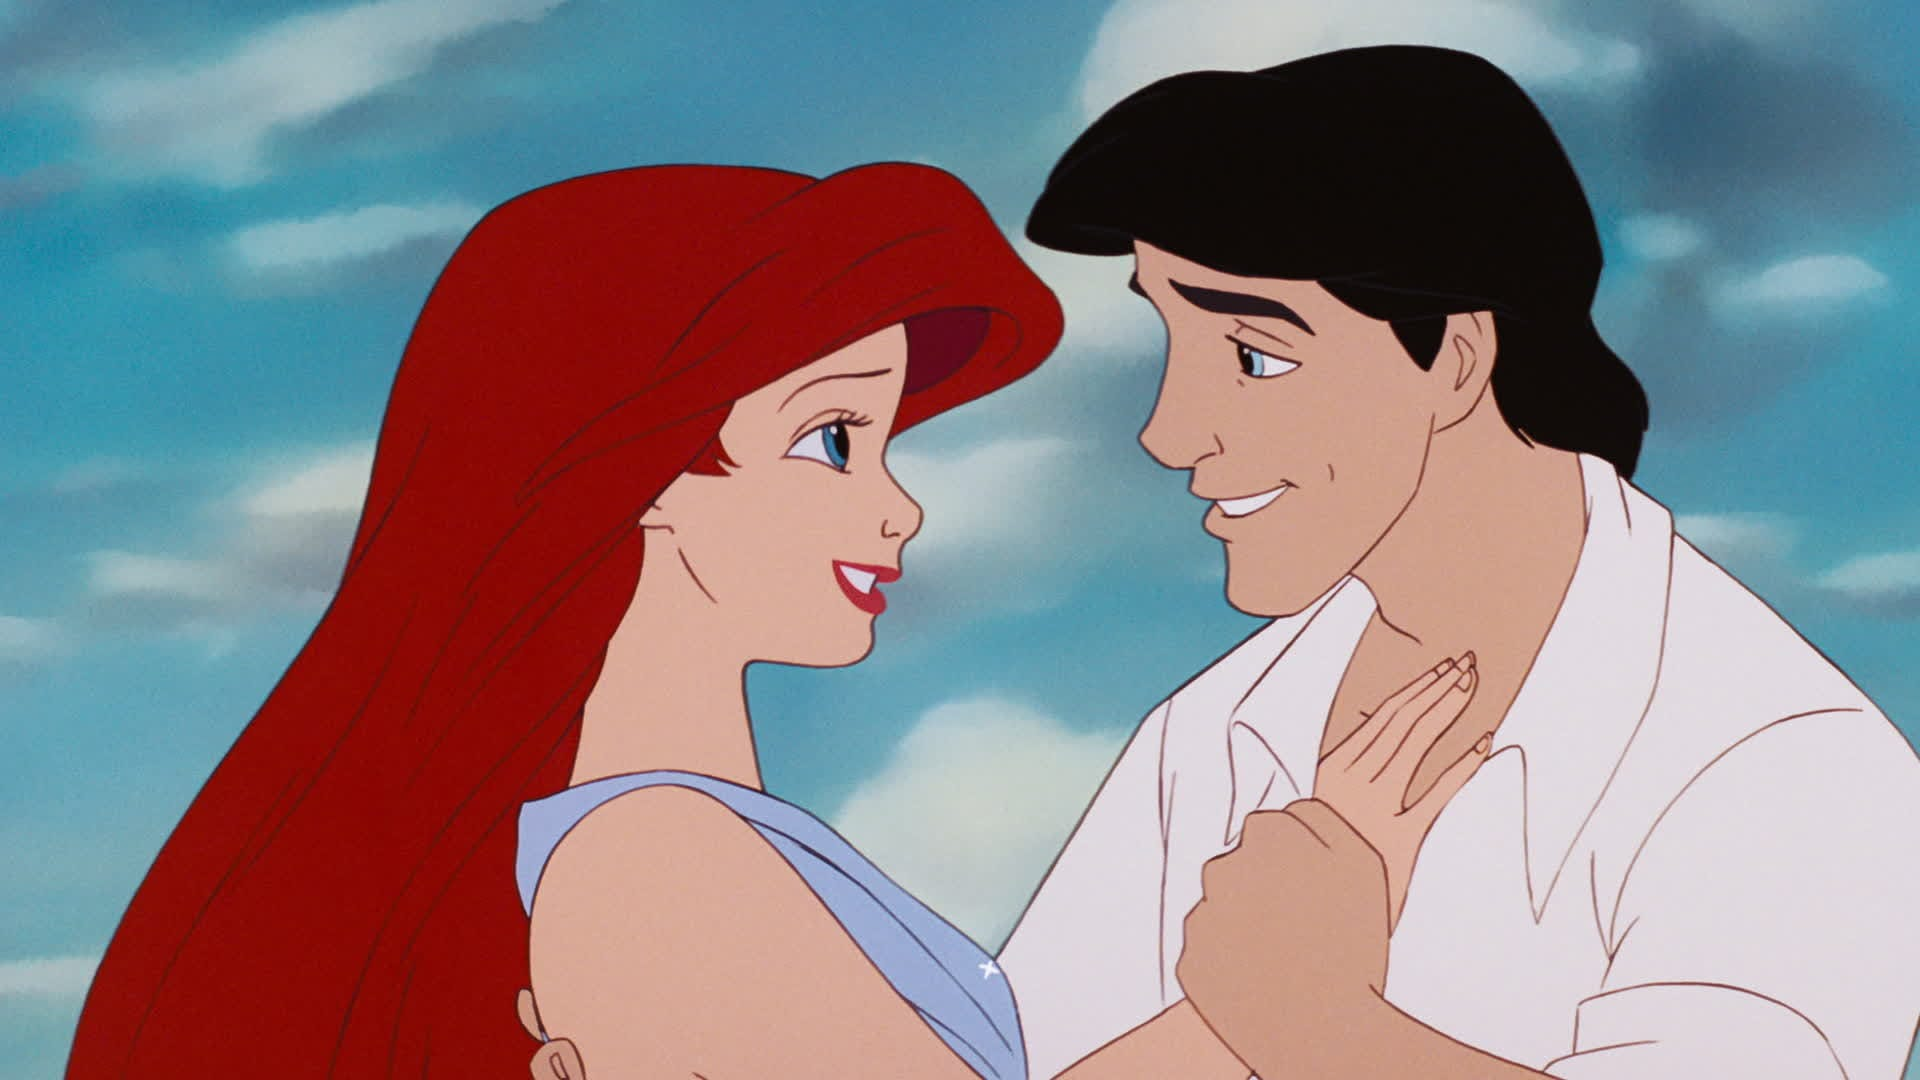 My Favorite Princess Story: The Little Mermaid